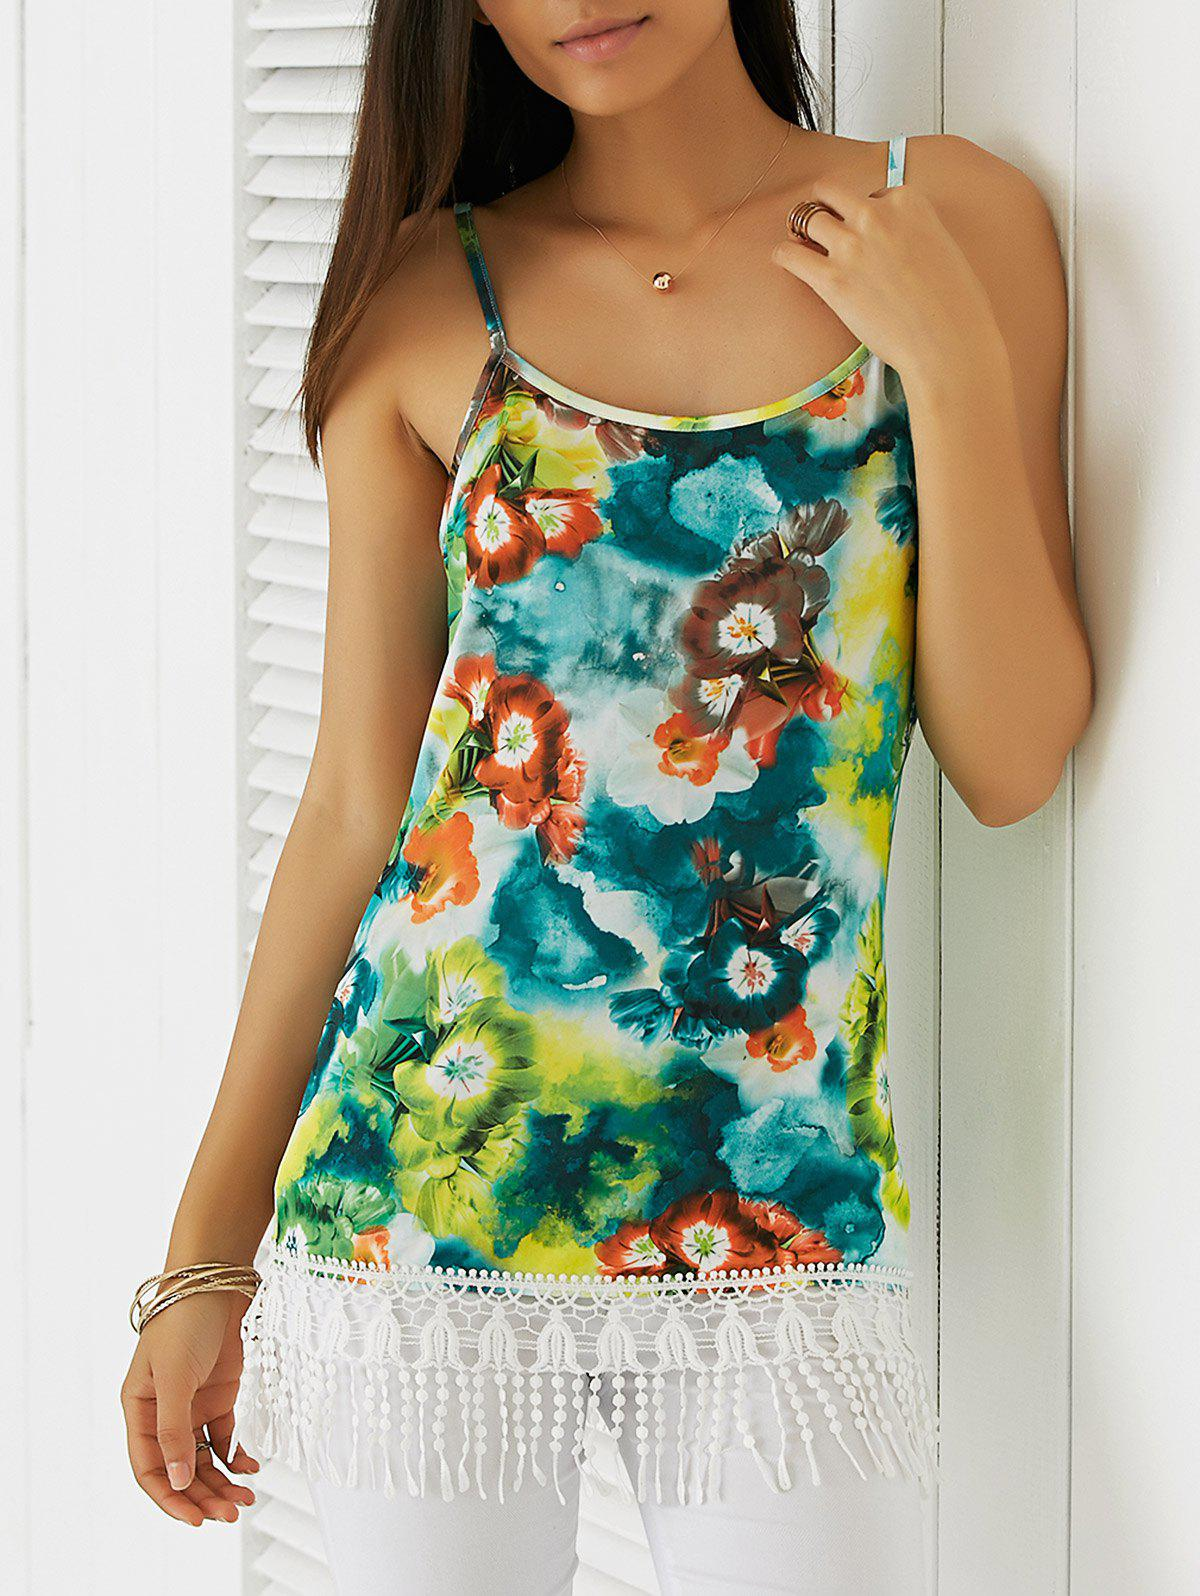 Fringed Floral Print  Spaghetti Strap Tank Top - COLORMIX L